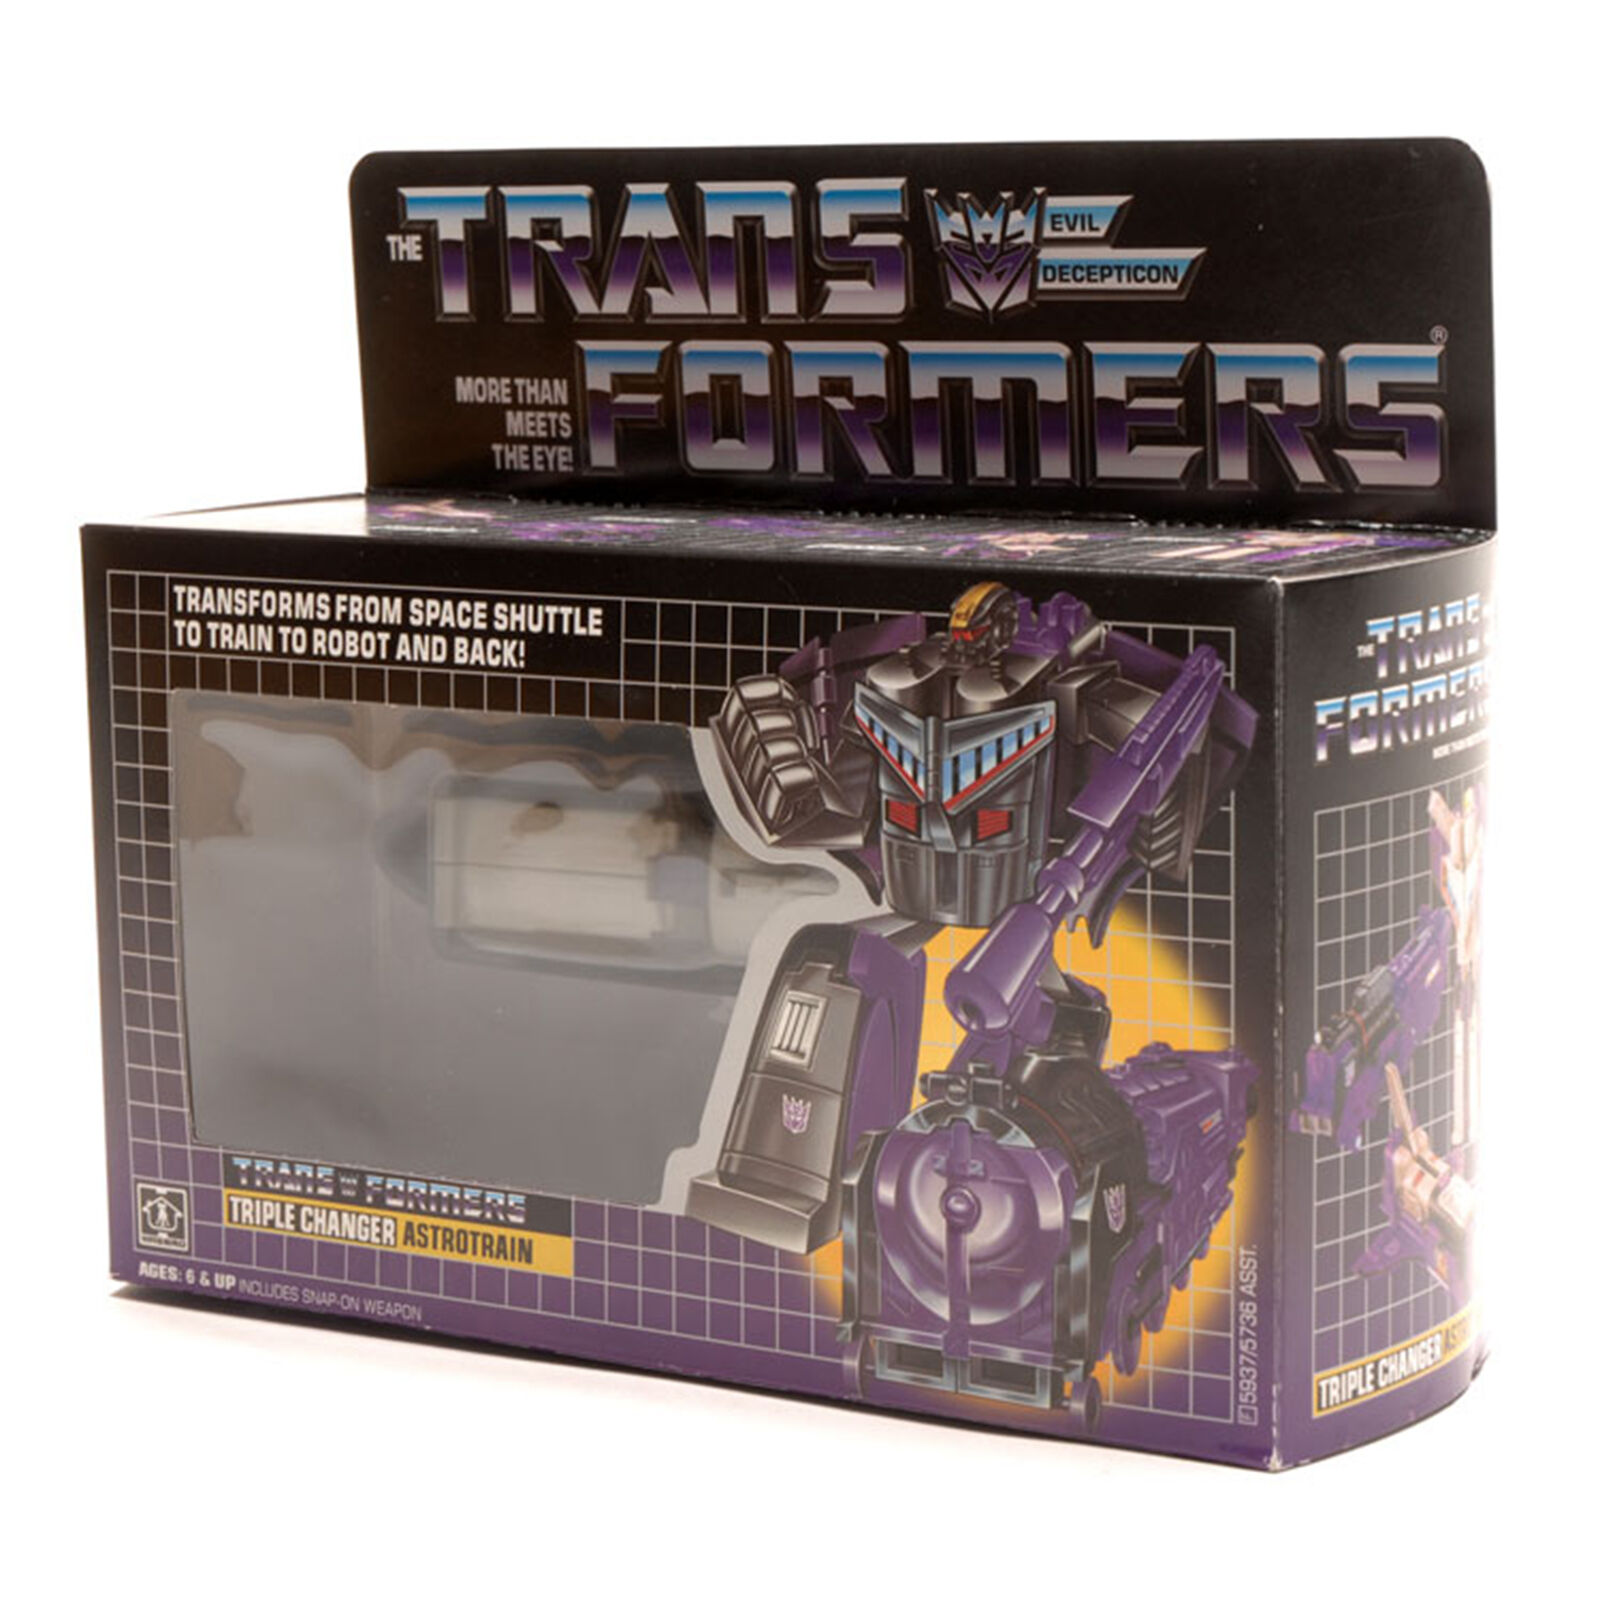 NEW ARRIVAL TRIPLE CHANGER ASTredRAIN TRANSFORMERS ACTION FIGURA TOYS